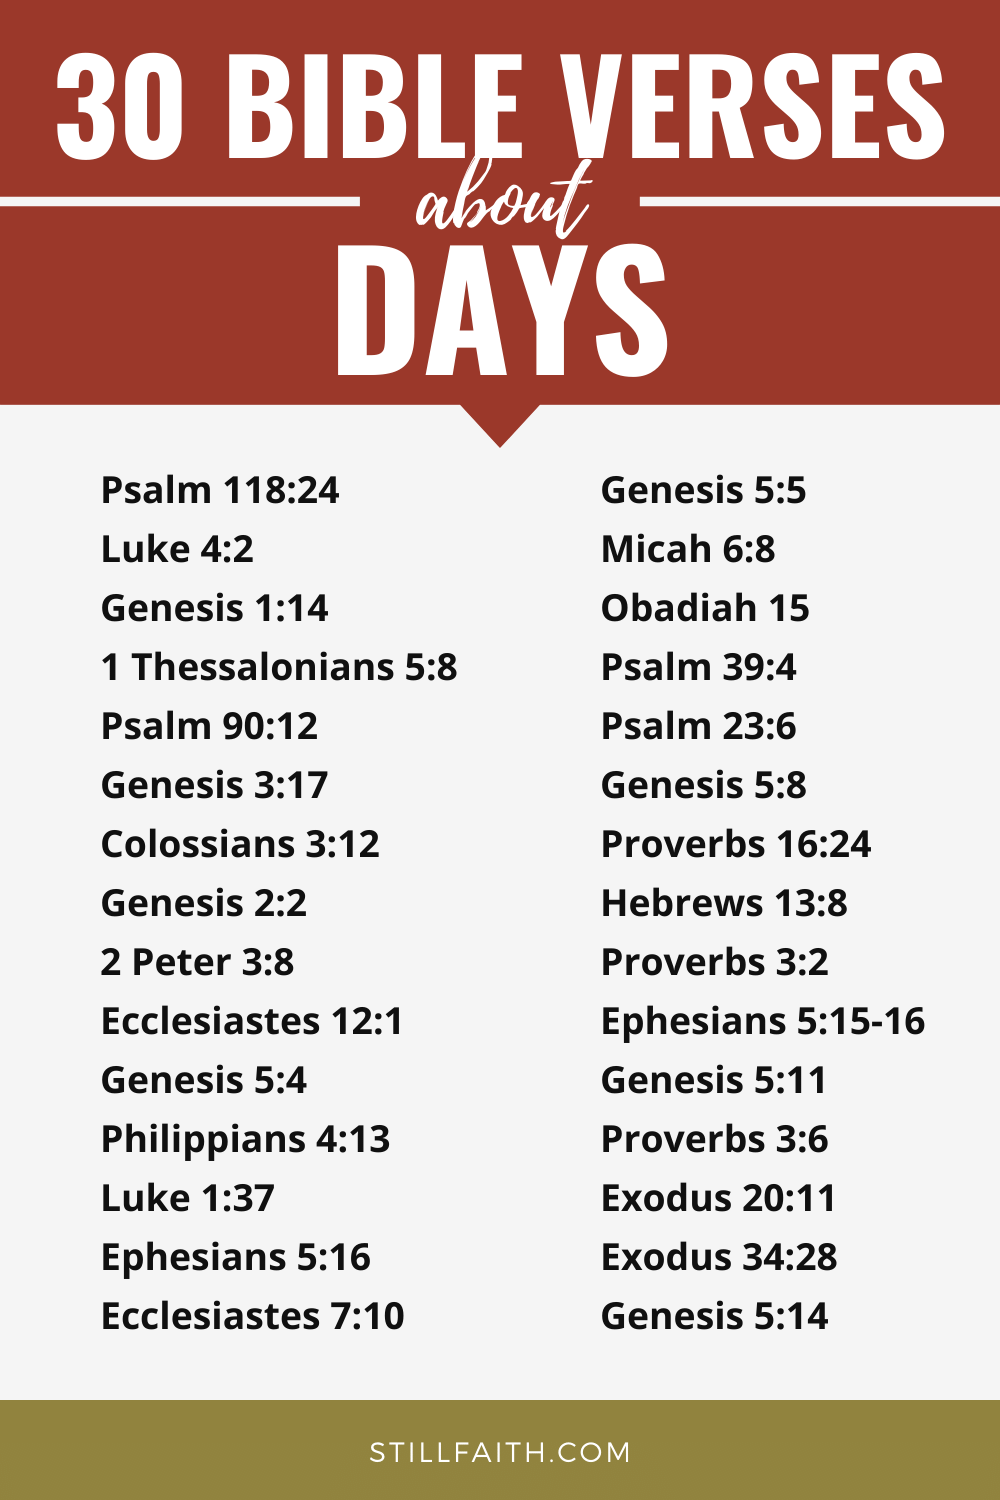 203 Bible Verses about Days